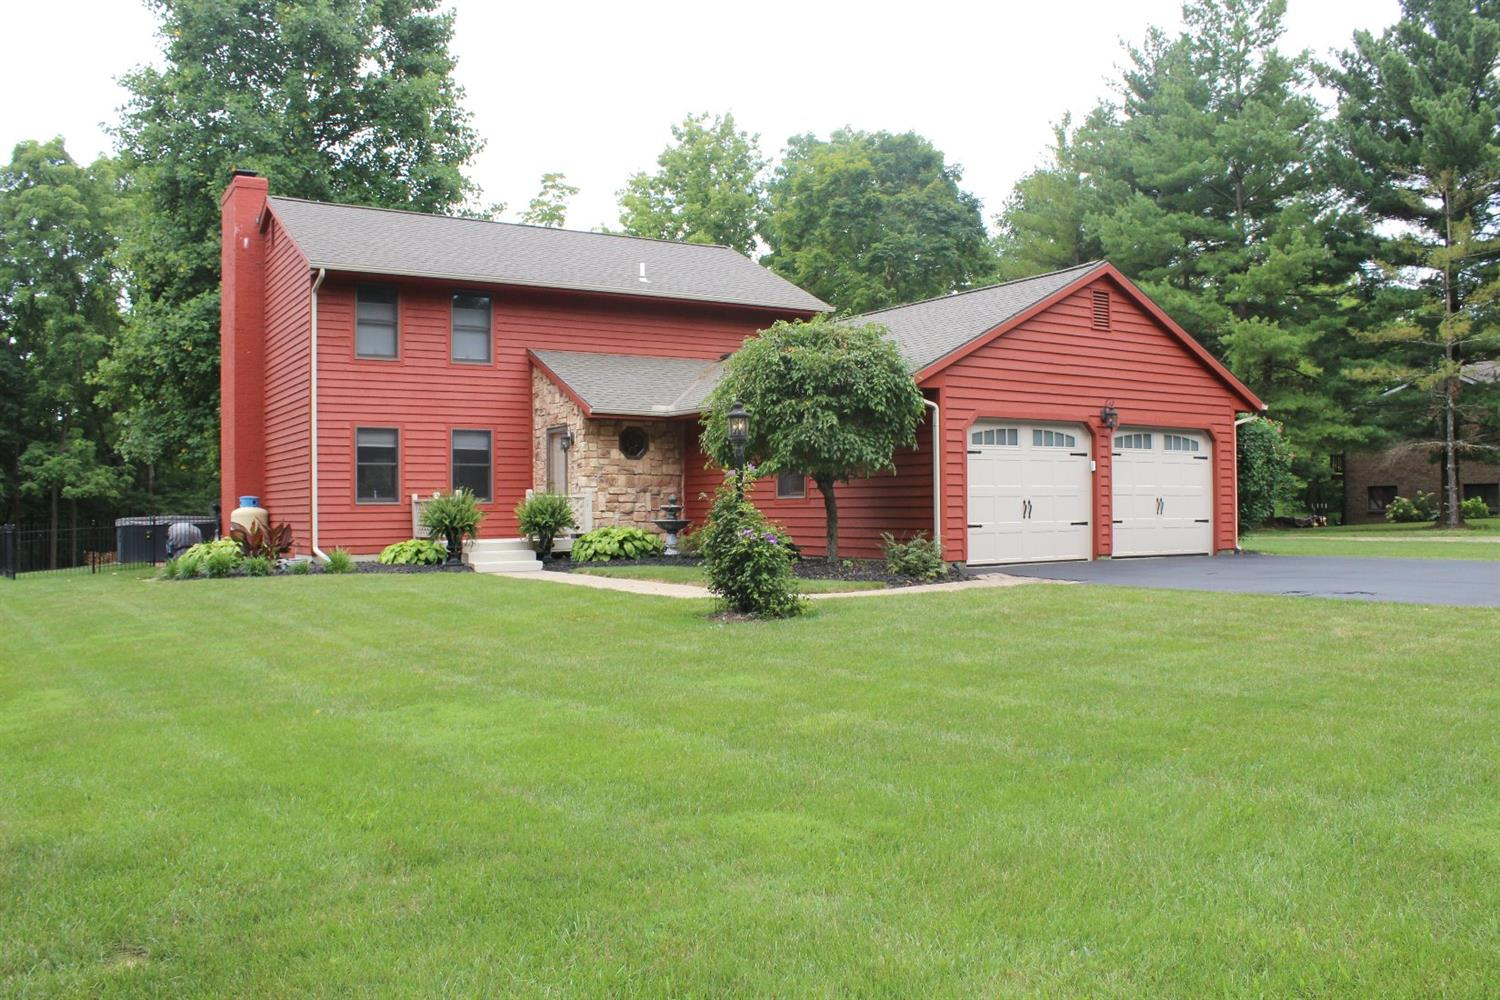 285 W St Rt 122 Clear Creek Twp., OH